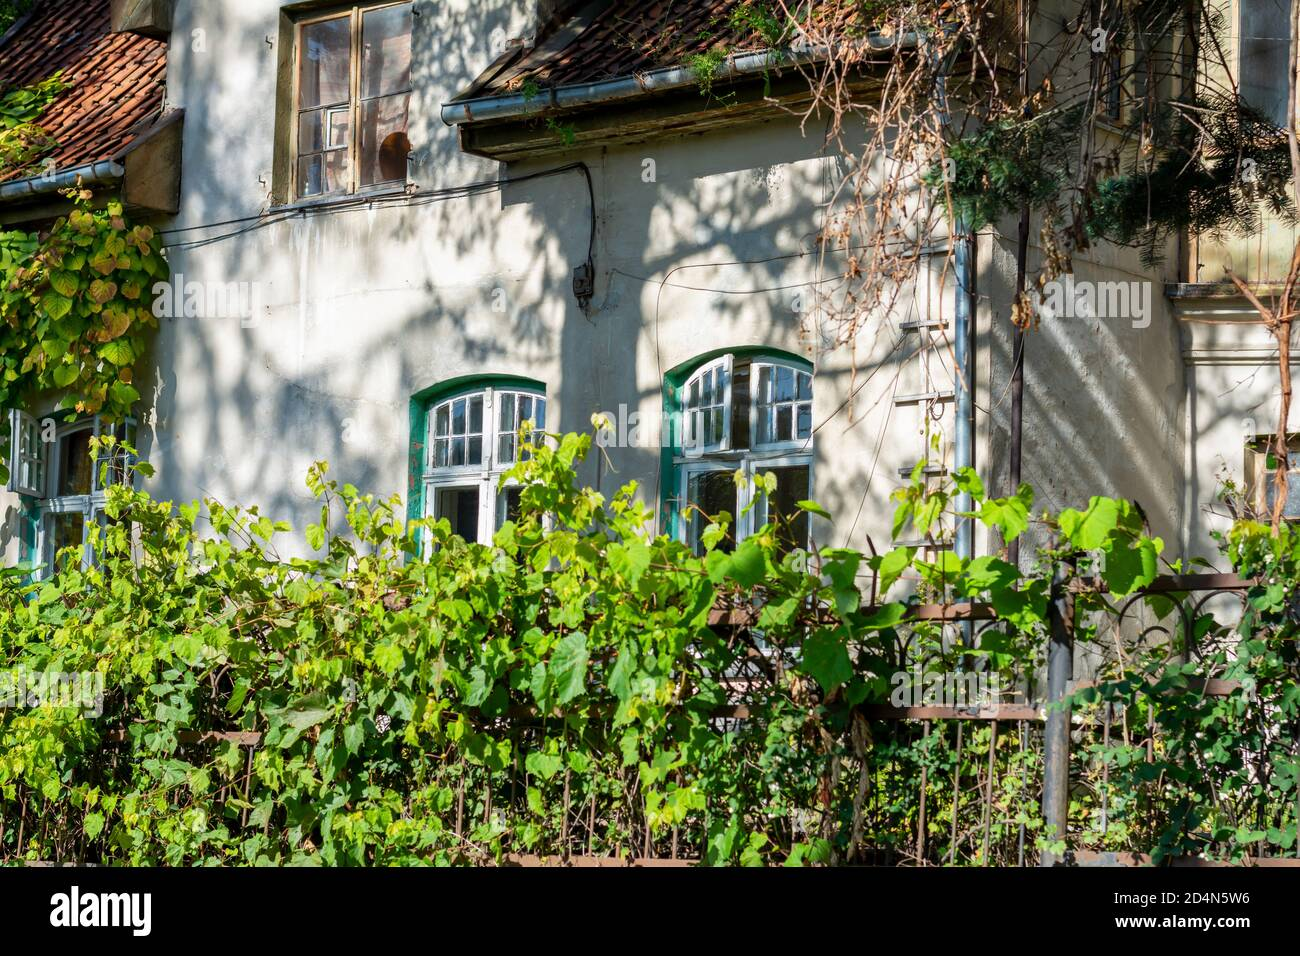 Facade of an old house with wooden windows and tiles. 19th century house without restoration. Stock Photo